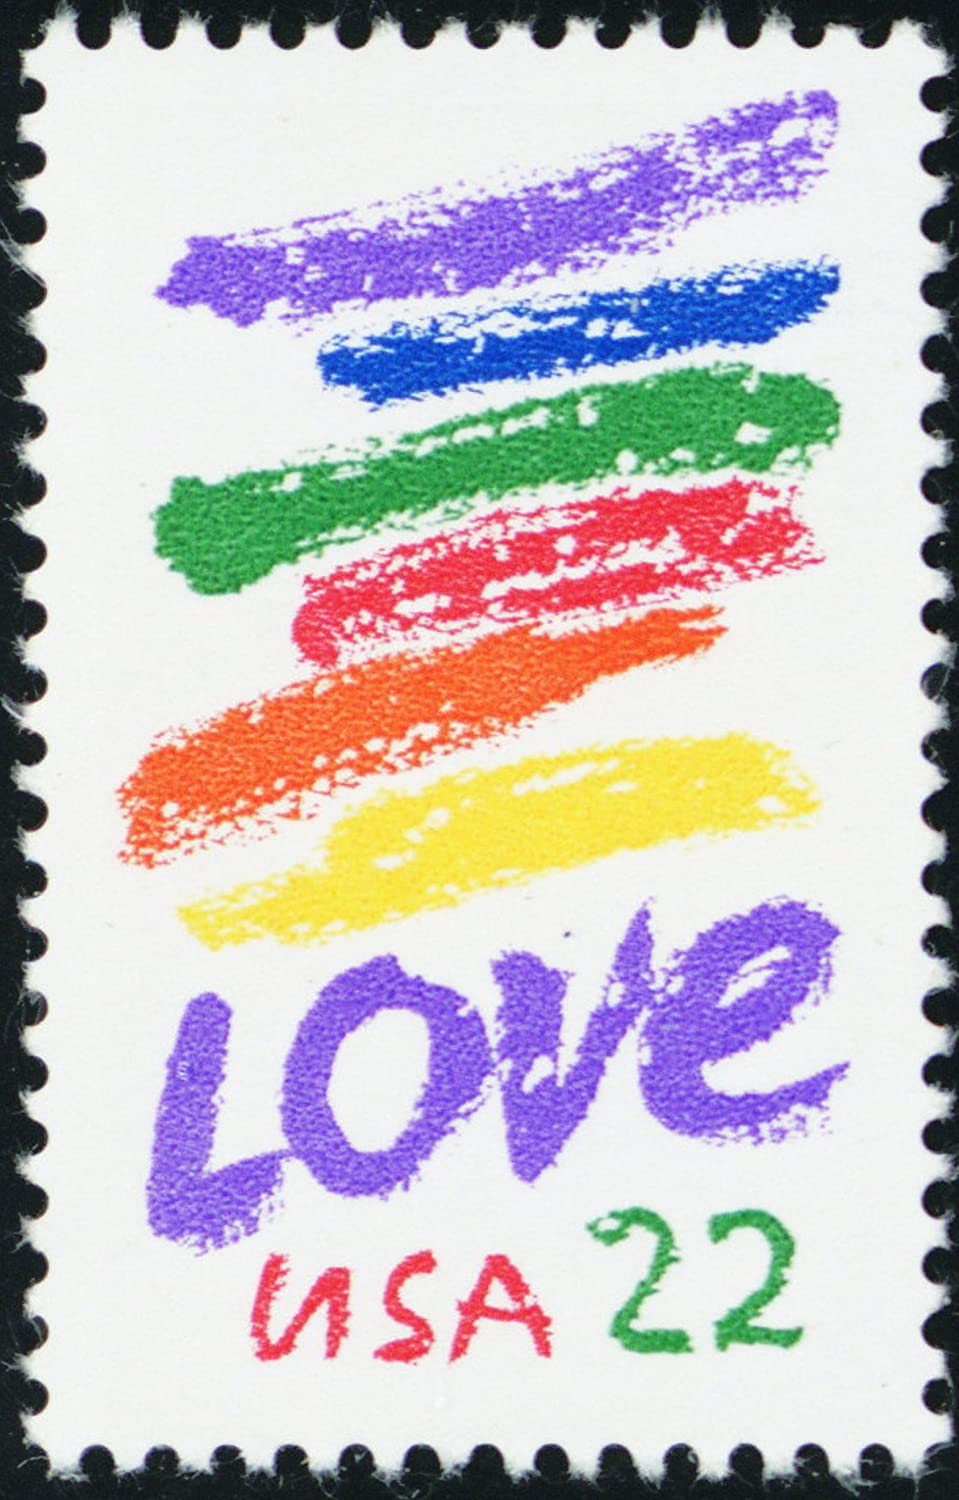 1985 22 Cent Love Series Postage Stamp In Mint Condition Scott 2143